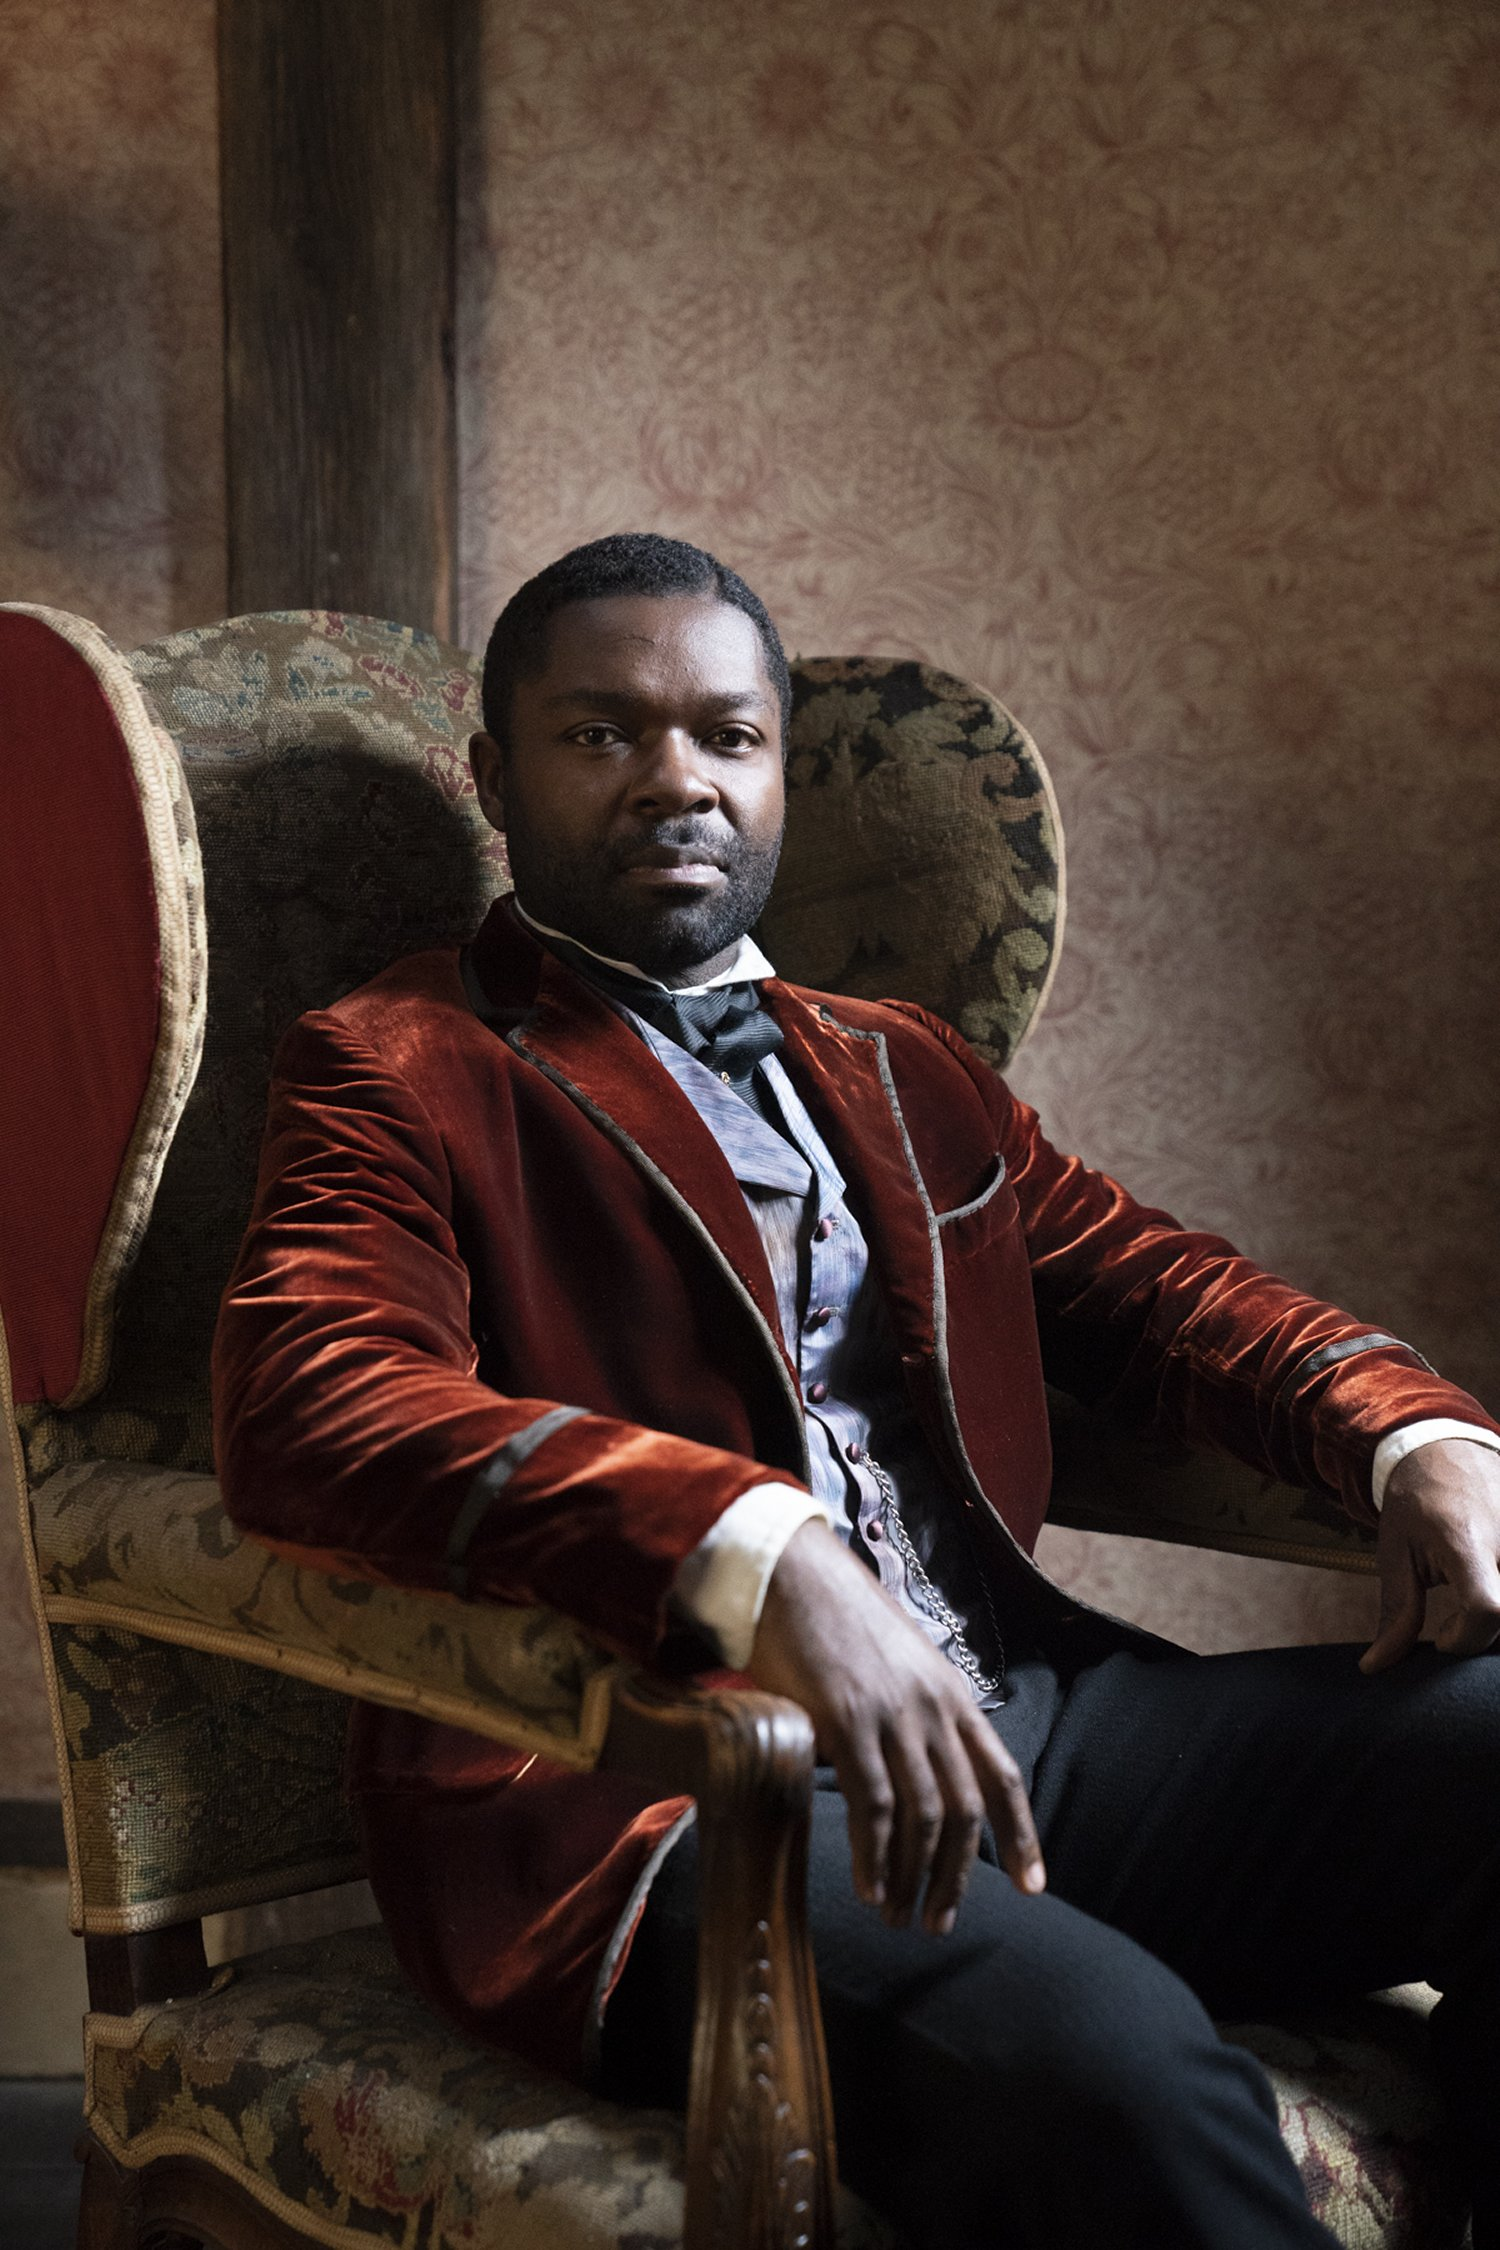 David Oyelowo in Come Away (Signature Entertainment, 2020) [3]